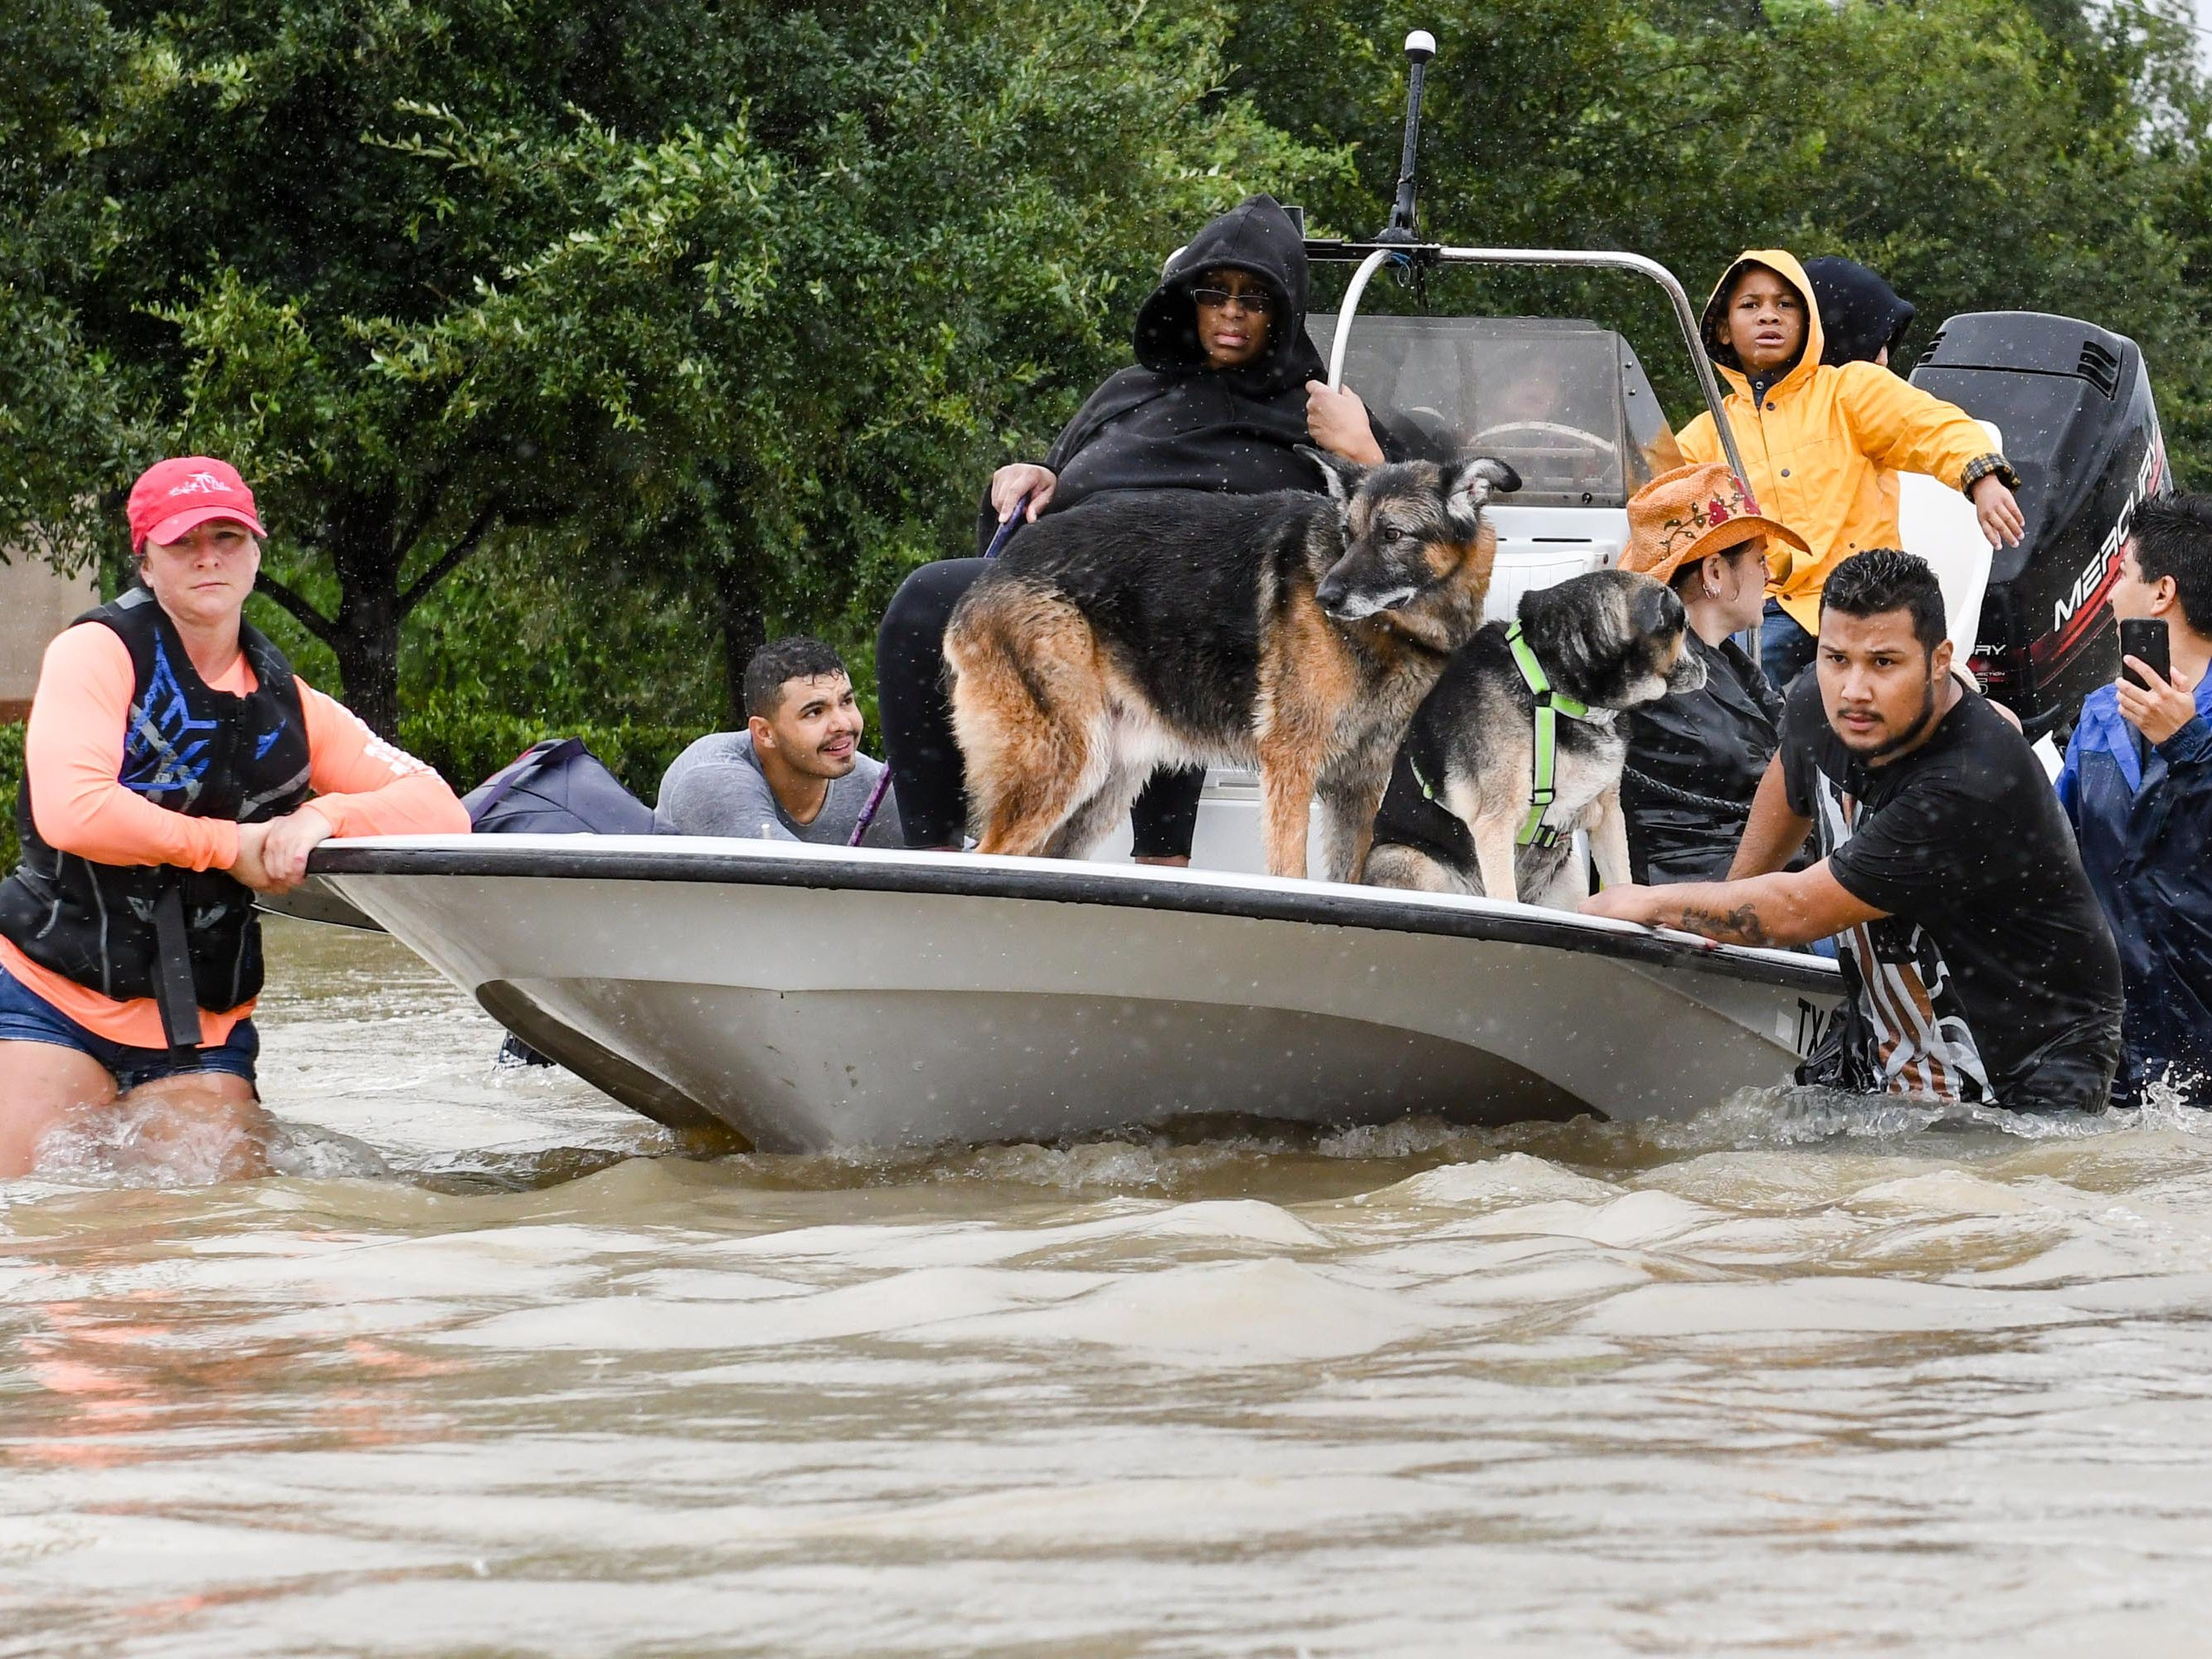 Volunteers and first responders work together to rescue residents from rising flood waters from Hurricane Harvey, Aug. 29, 2017, in Houston.